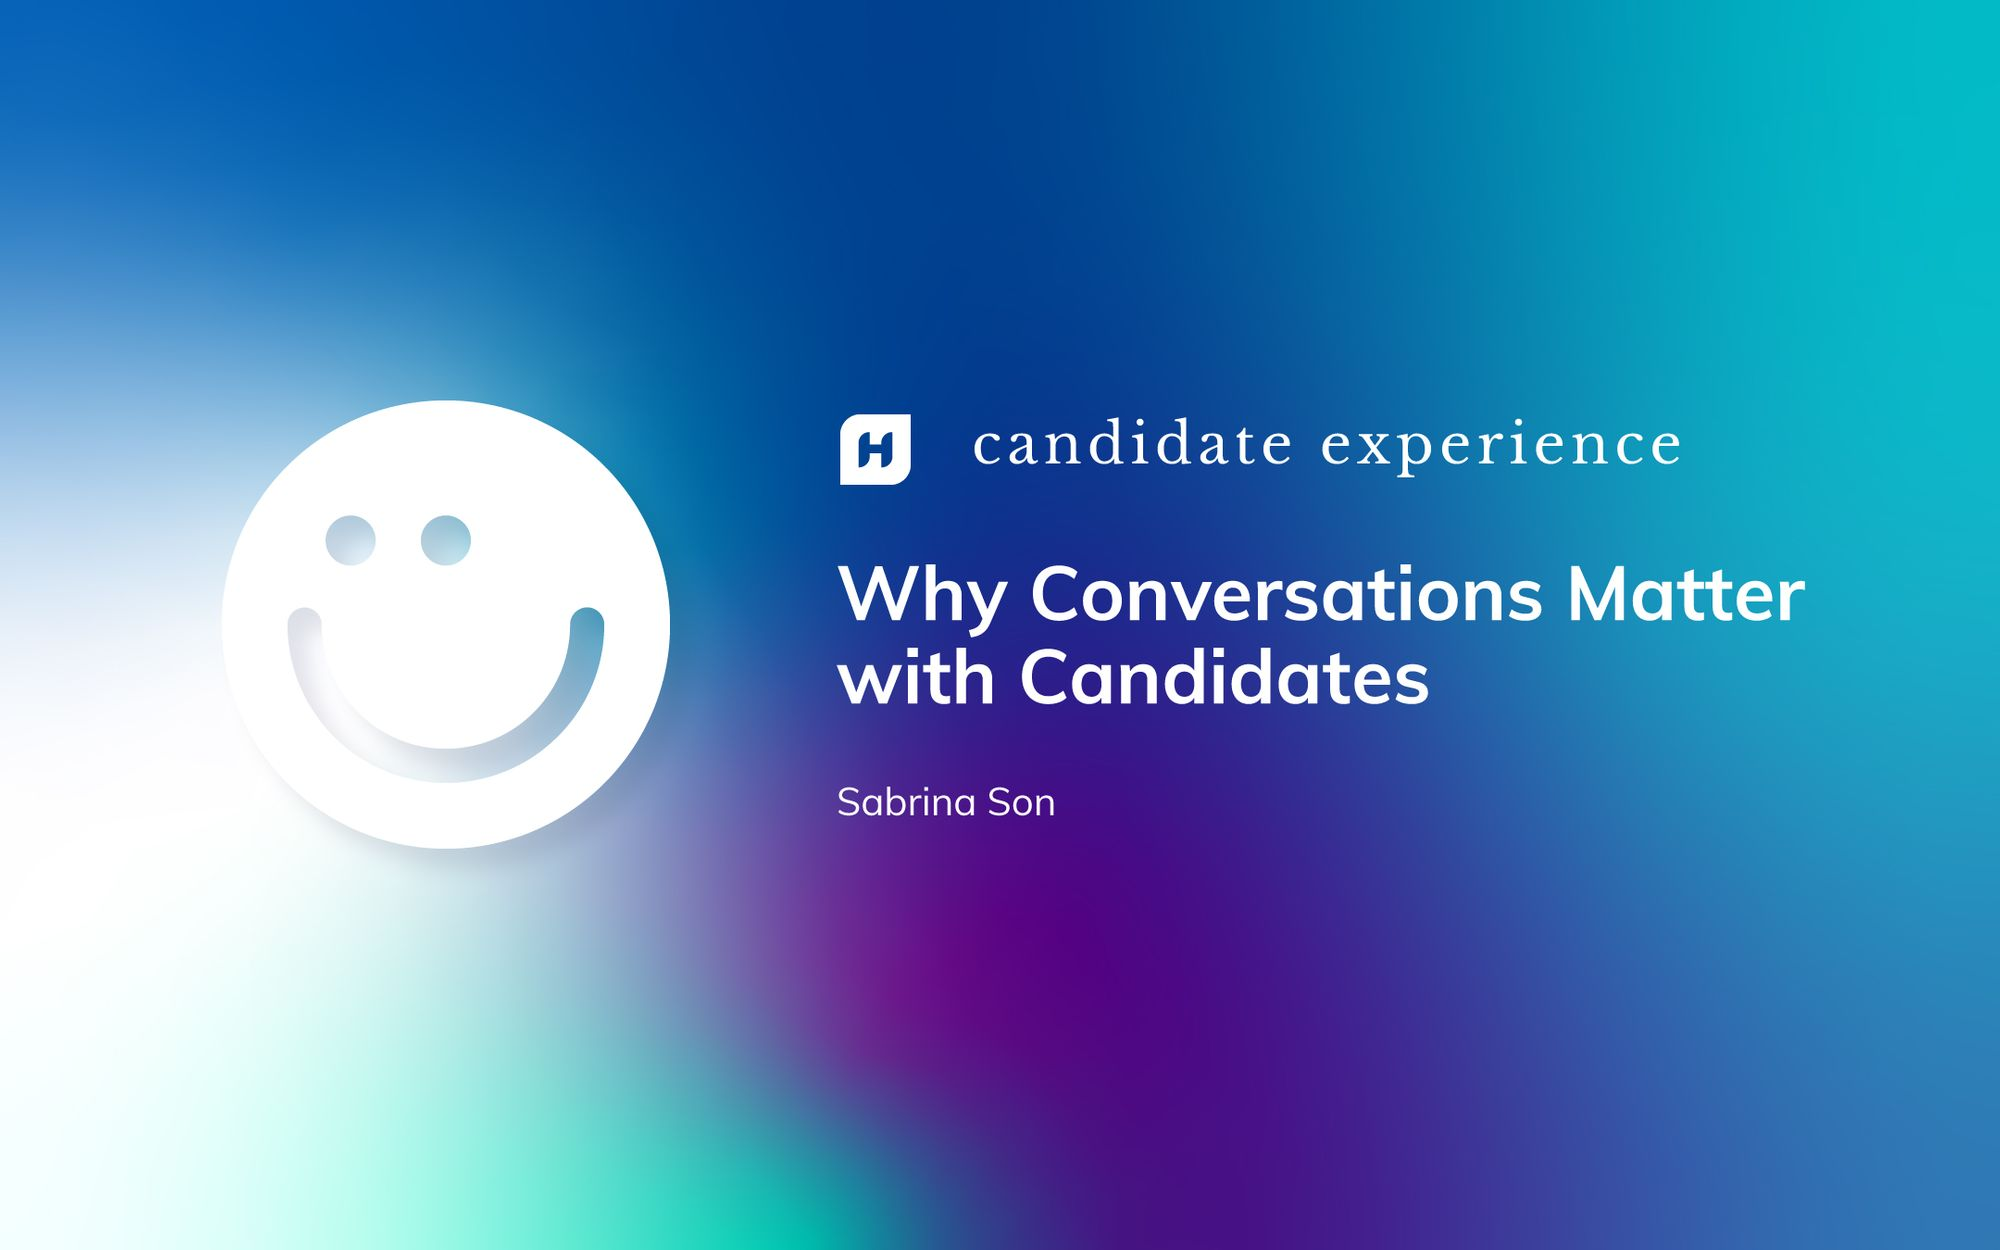 Why Conversations Matter with Candidates